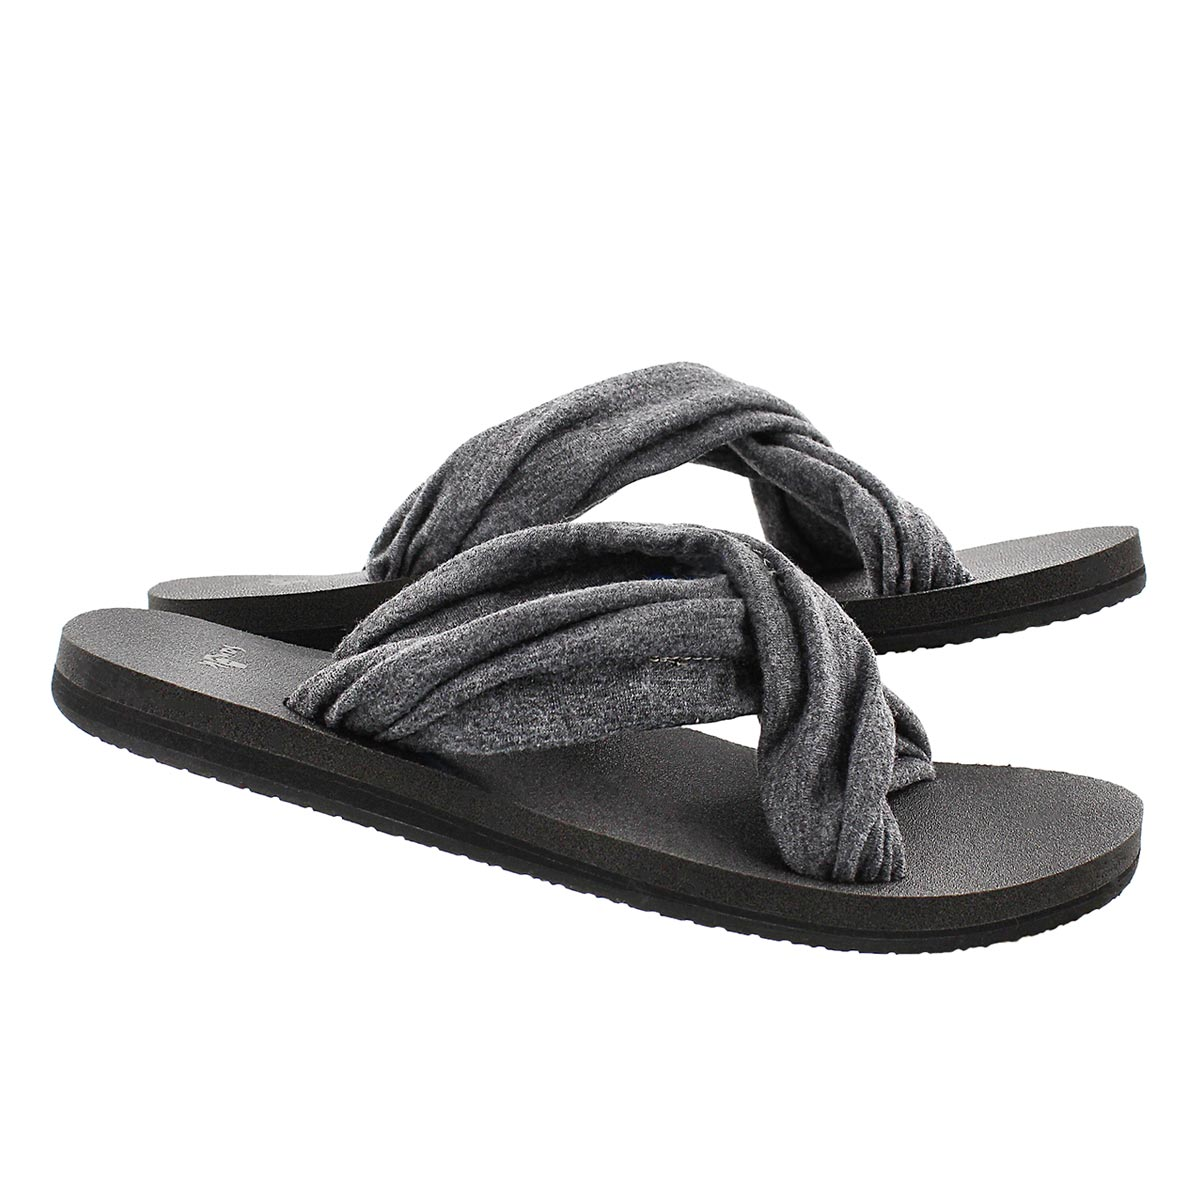 Lds Yoga X-Hale charcoal slide sandal